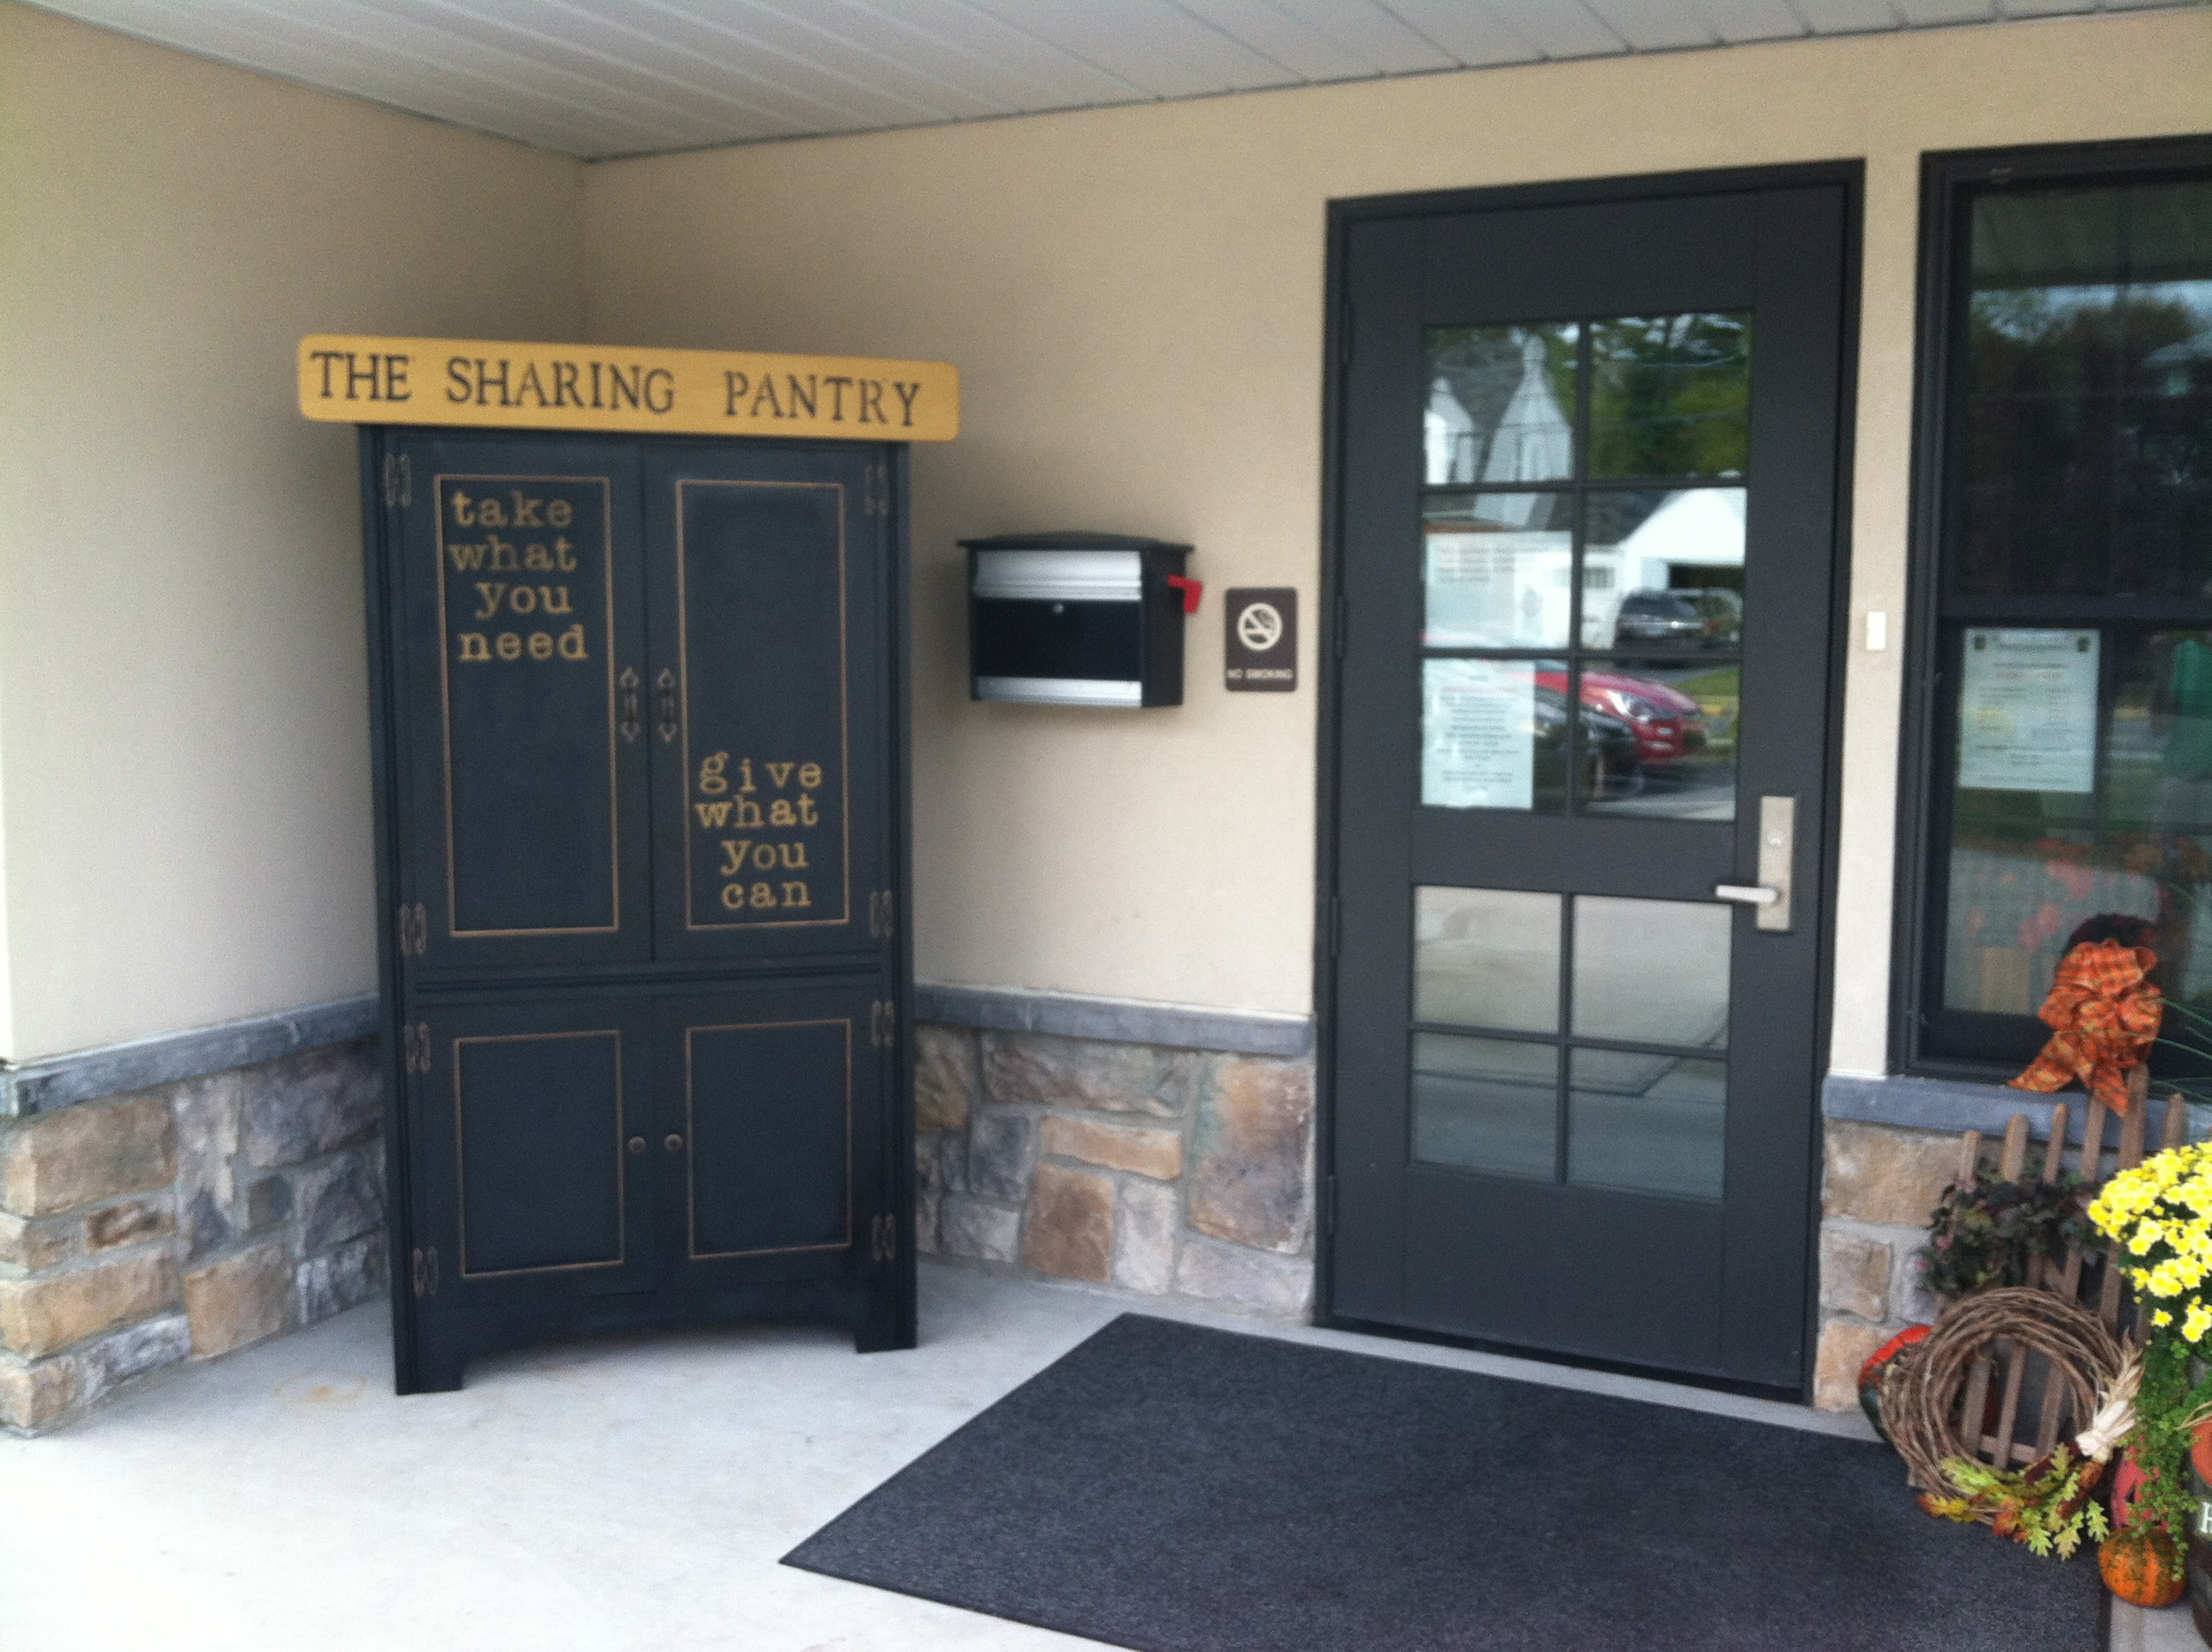 The new Little Free Sharing Pantry is now open and available 24/7 at the entrance to the Middletown Police Station on East Emaus Street.